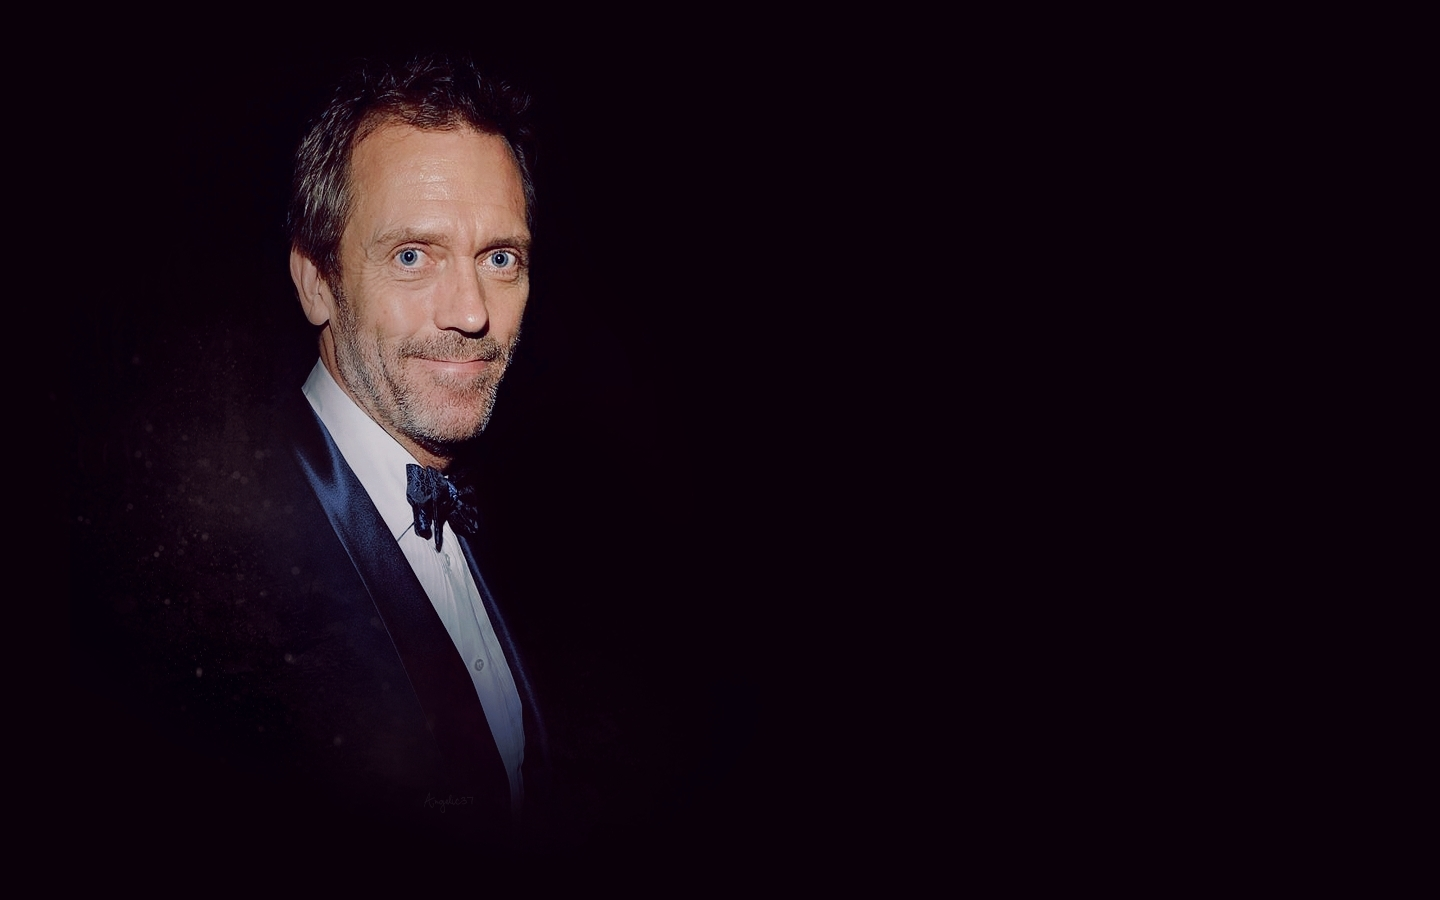 Hugh Laurie Emmy wallpaper - House M.D. Wallpaper (15186006) - Fanpop